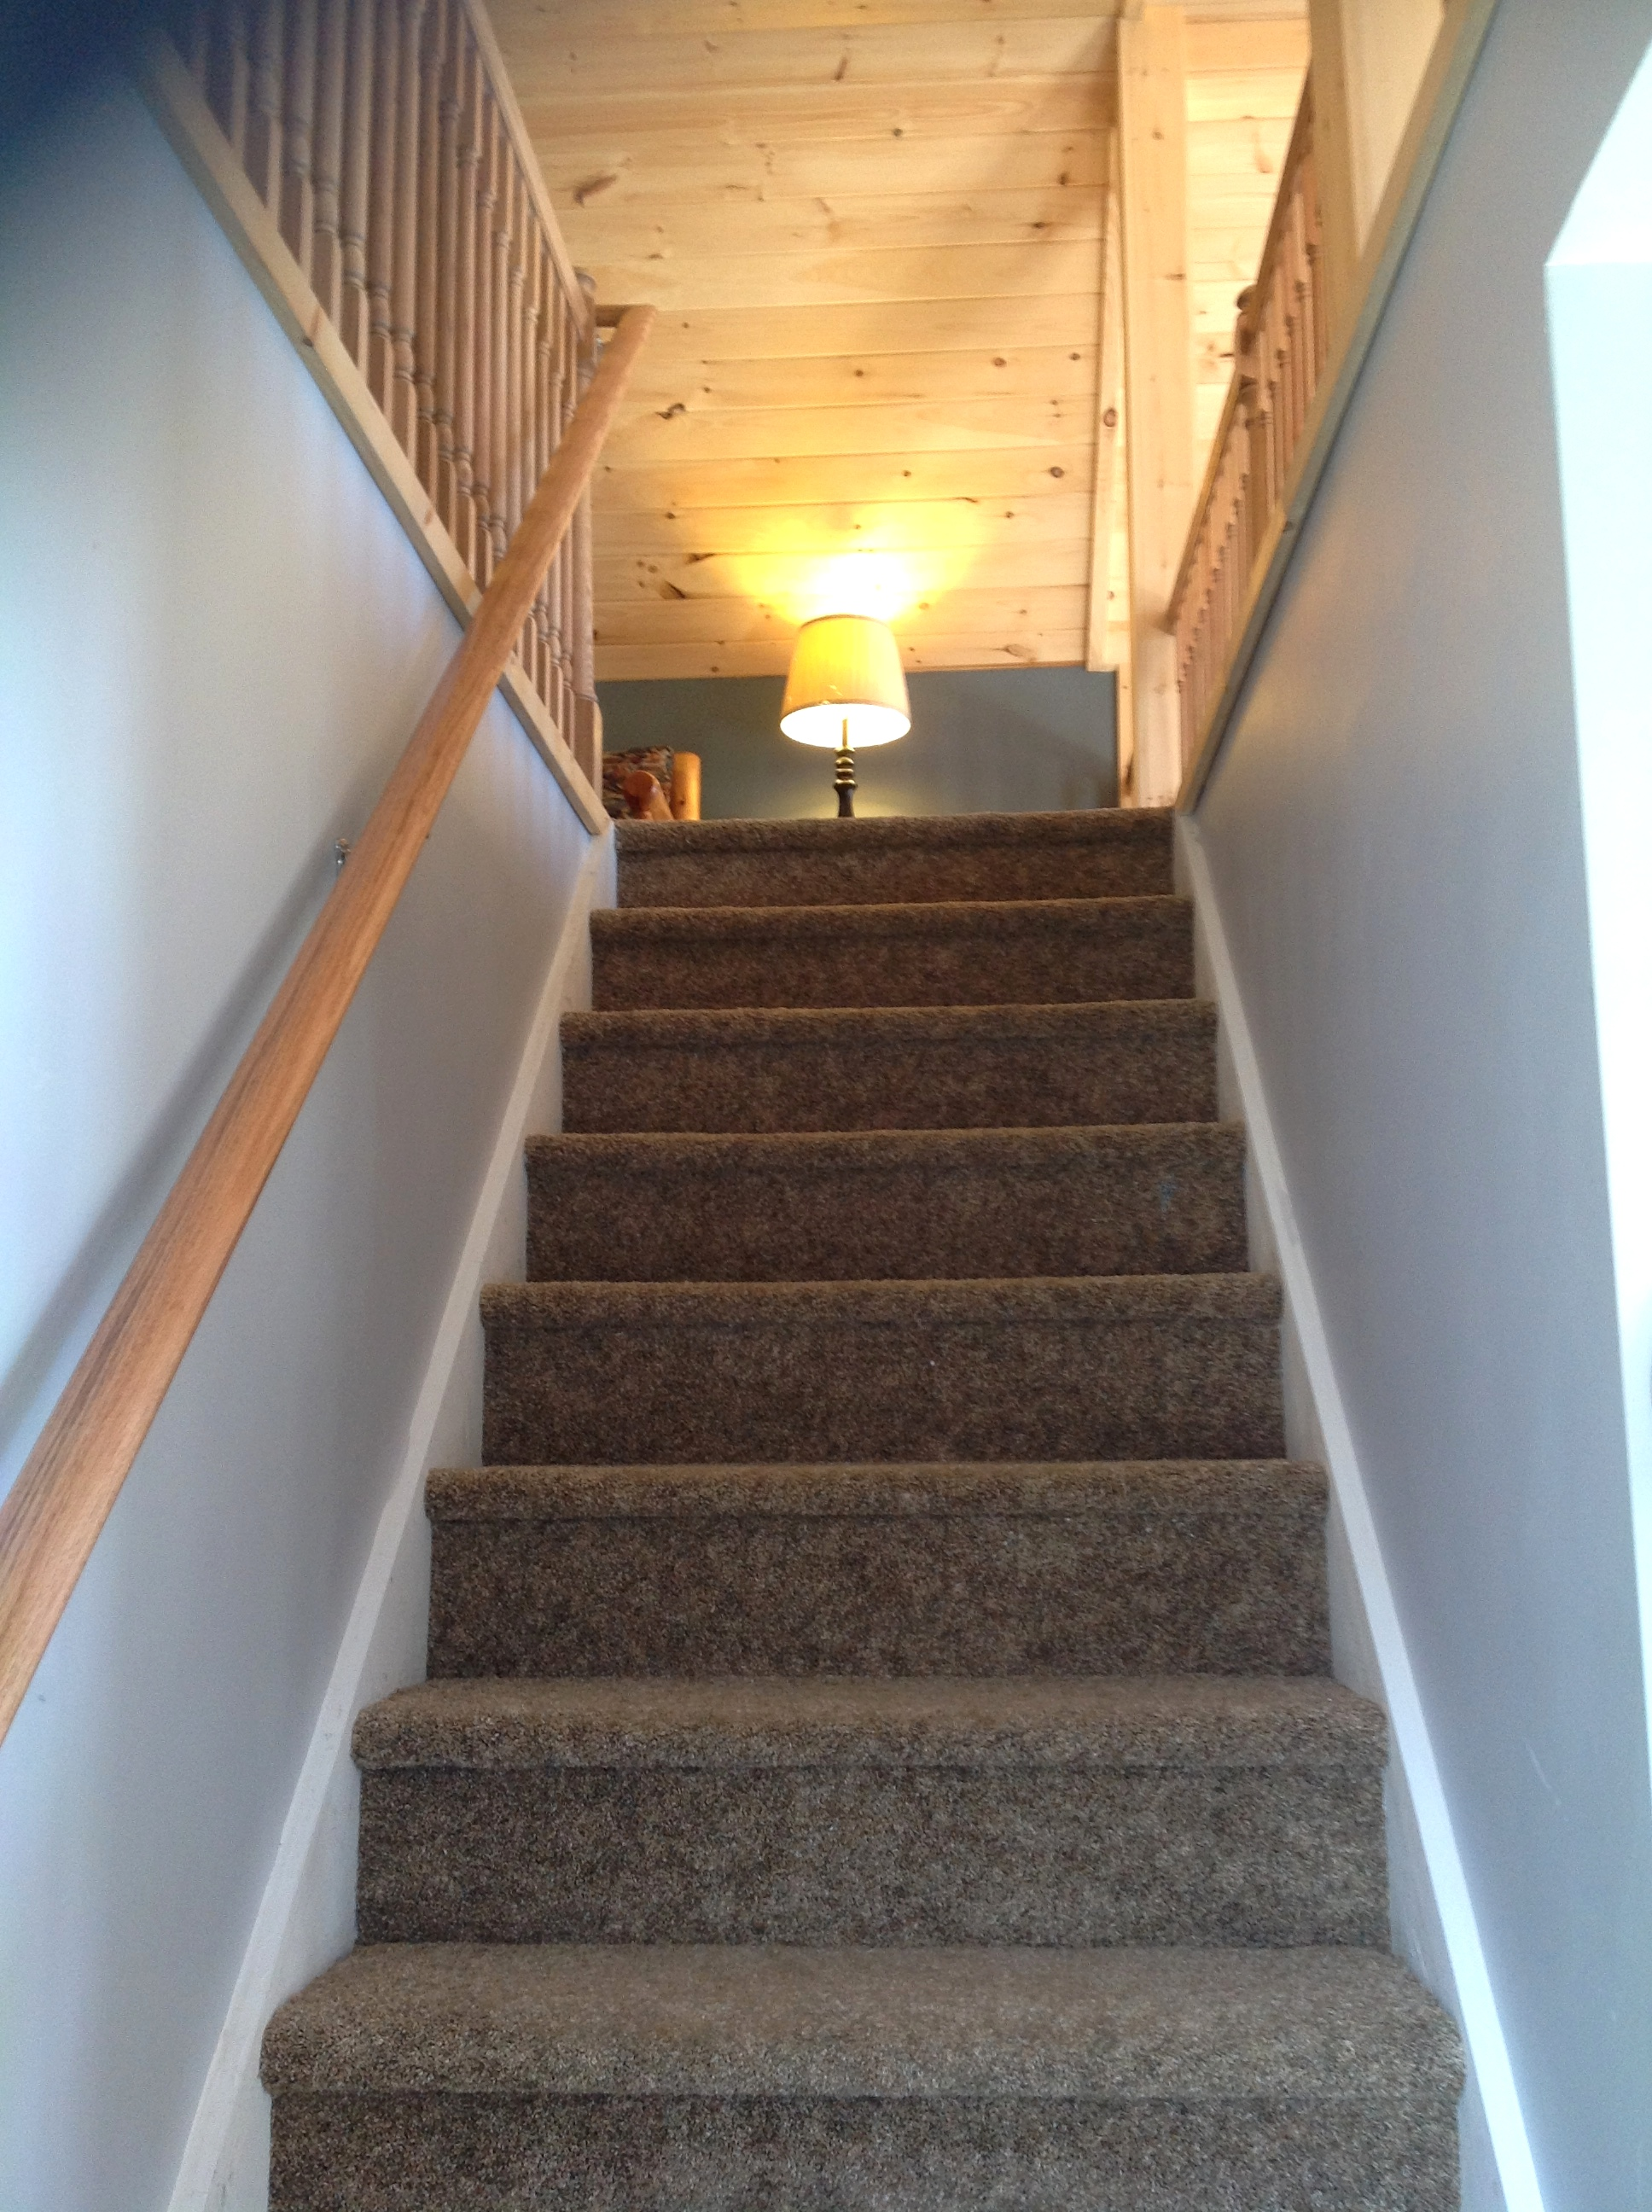 Stair way to the loft.